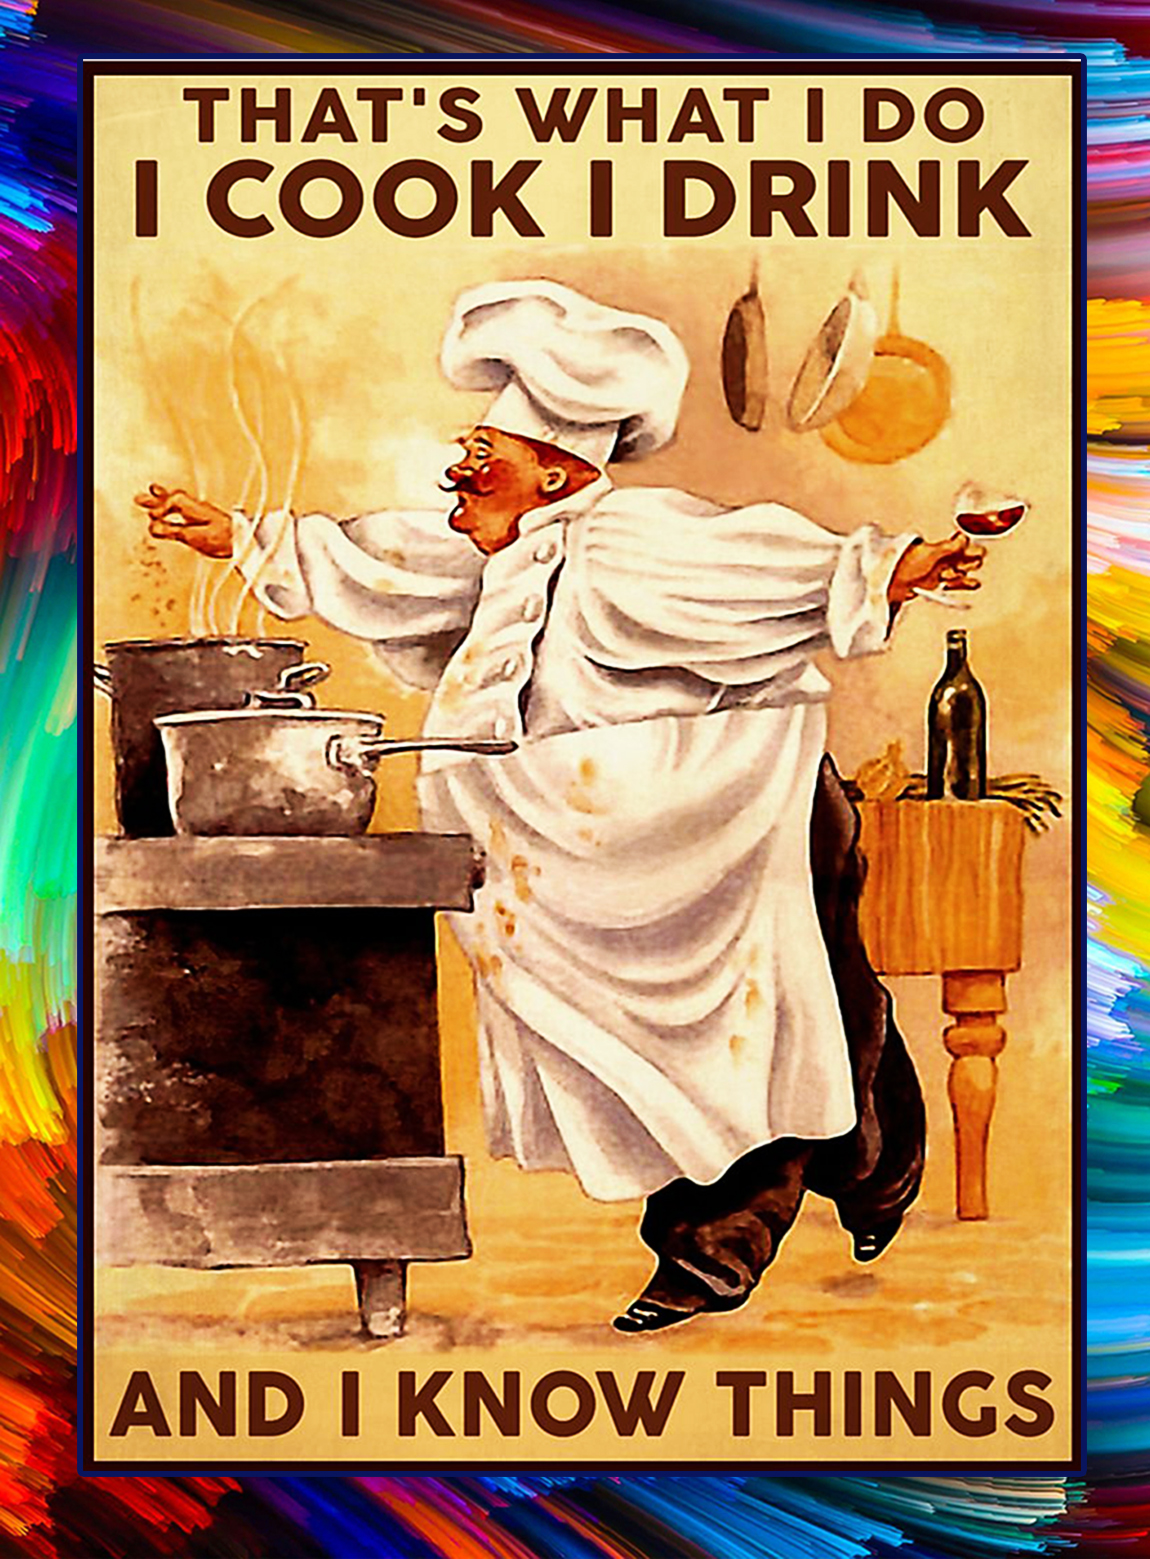 Chef that's what i do i cook i drink and i know things poster - A3